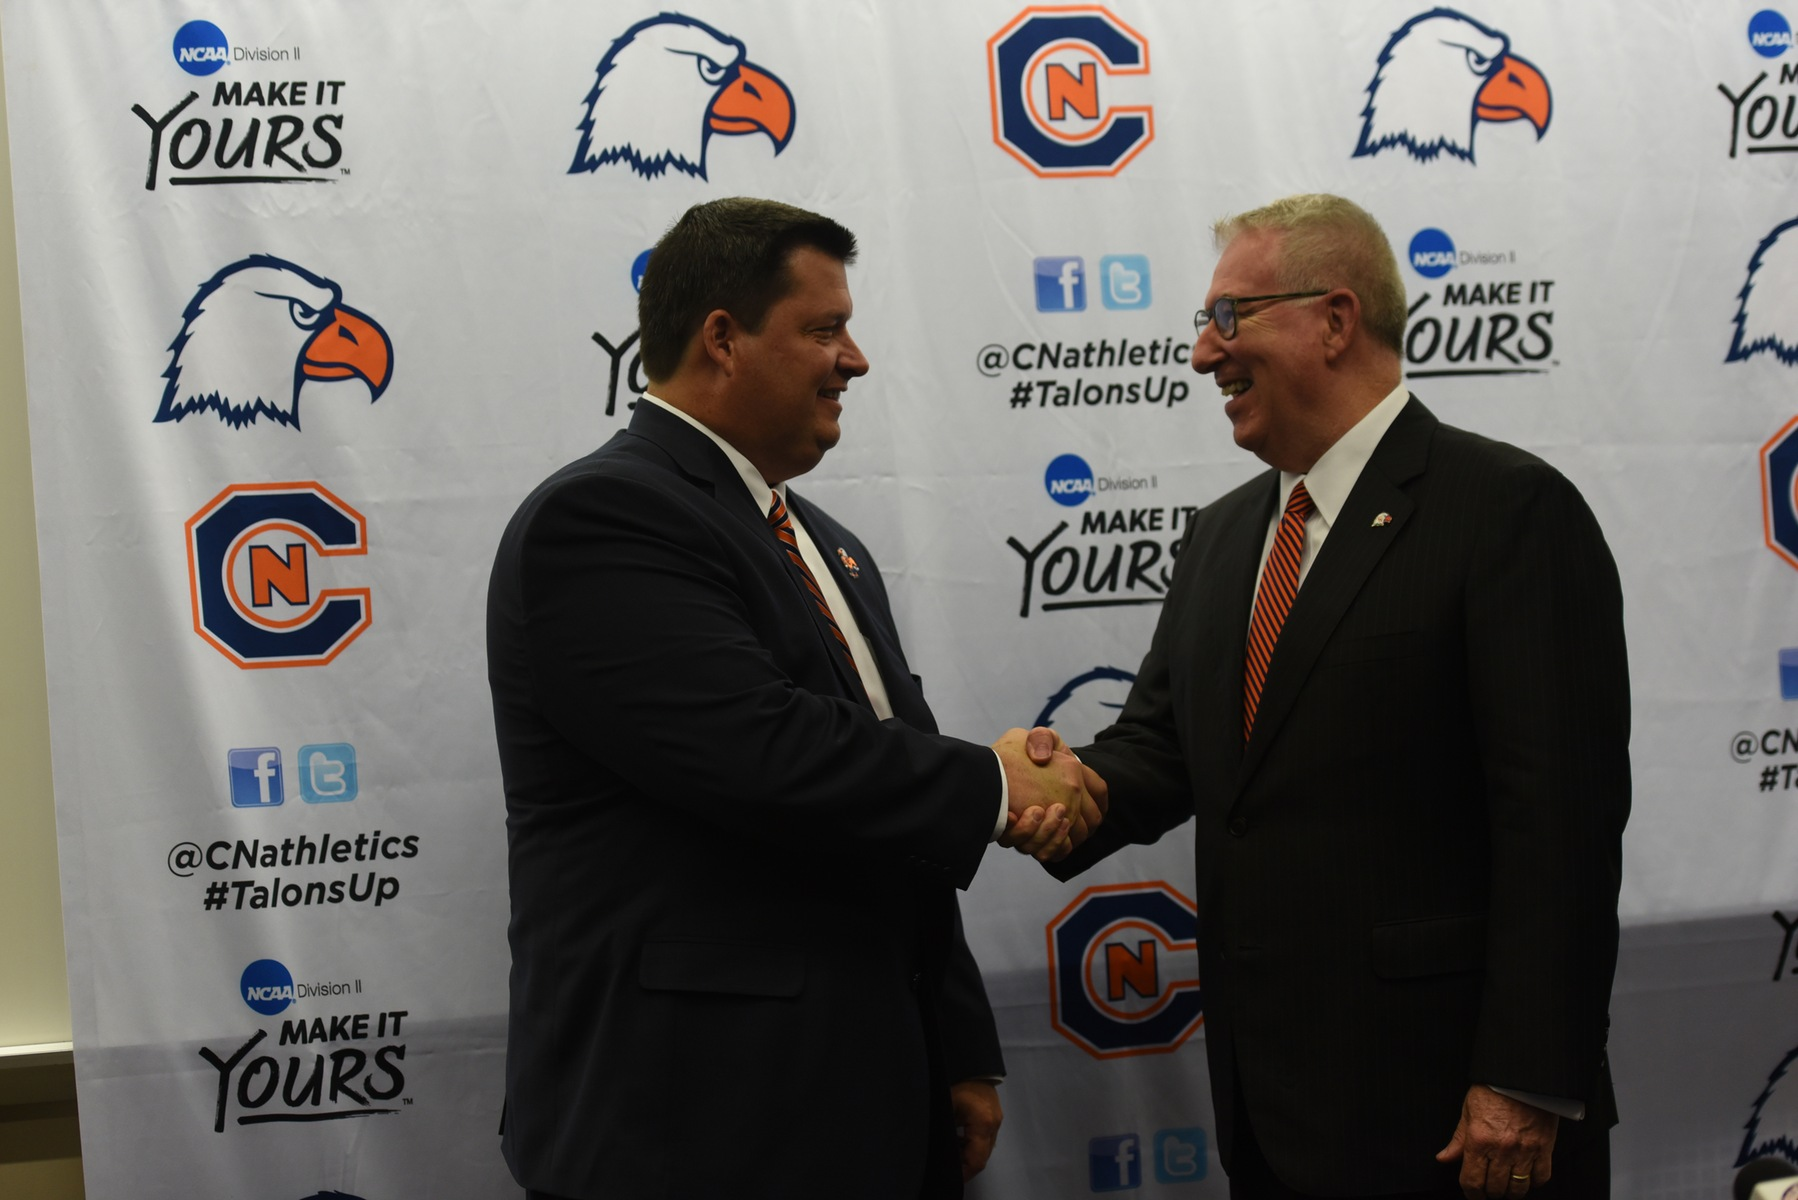 VP for Athletics Matt Pope welcomed to C-N community with press conference